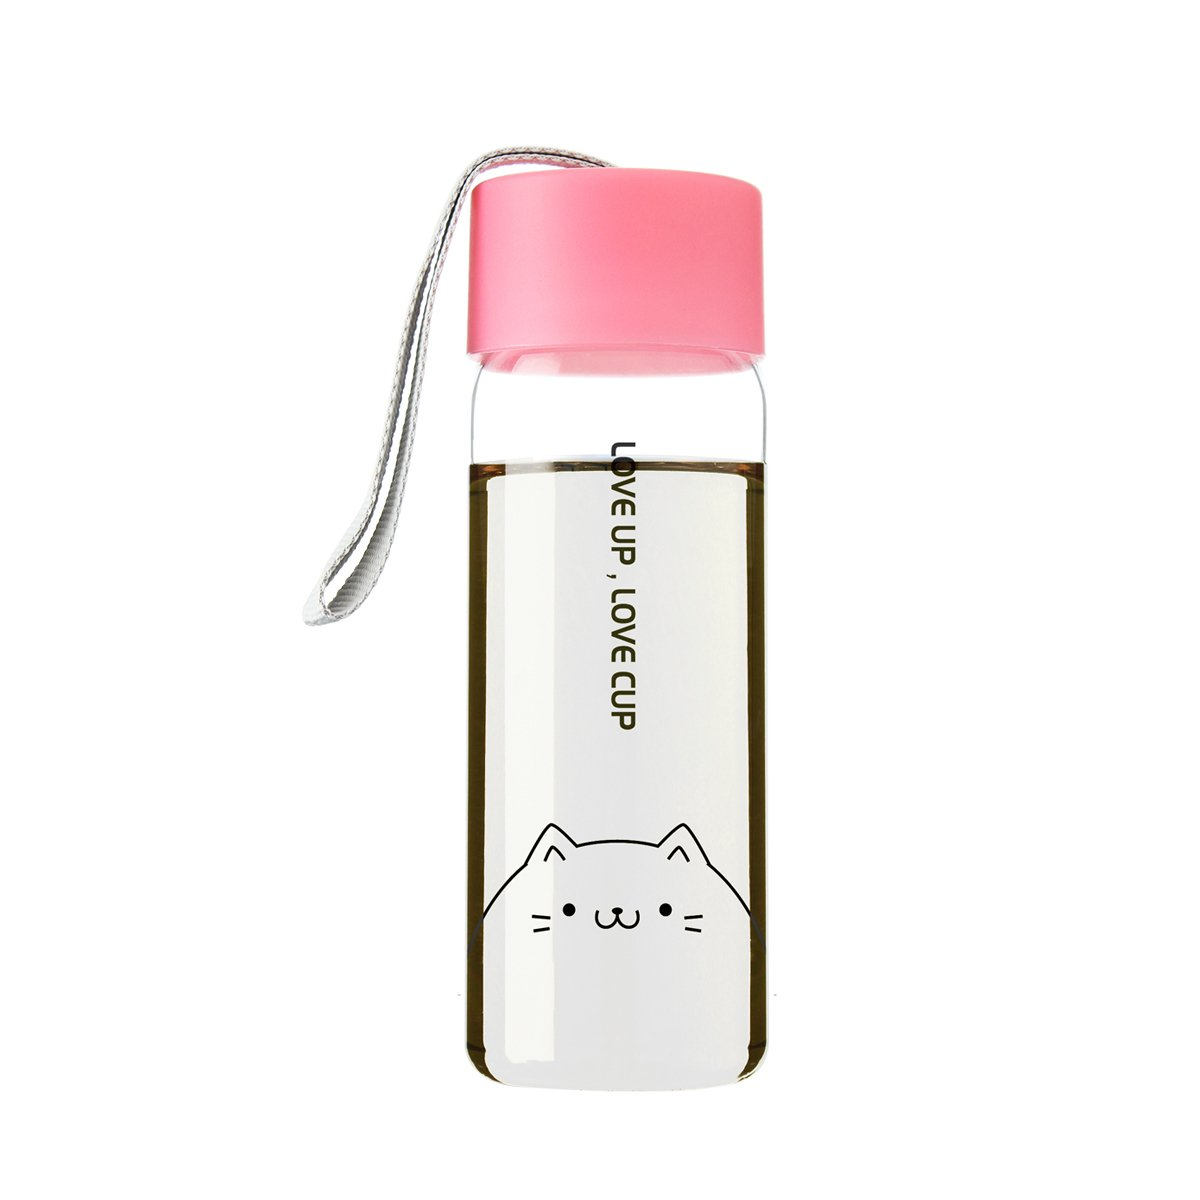 UPSTYLE Eco-friendly Healthy Plastic Scale Design Transparent Sports Water Bottle Direct Drinking Water Cup with Colorful Lid for Tea, Coffee, Milk or Juice Size 300 ml, Pink Cat COMIN18JU066671